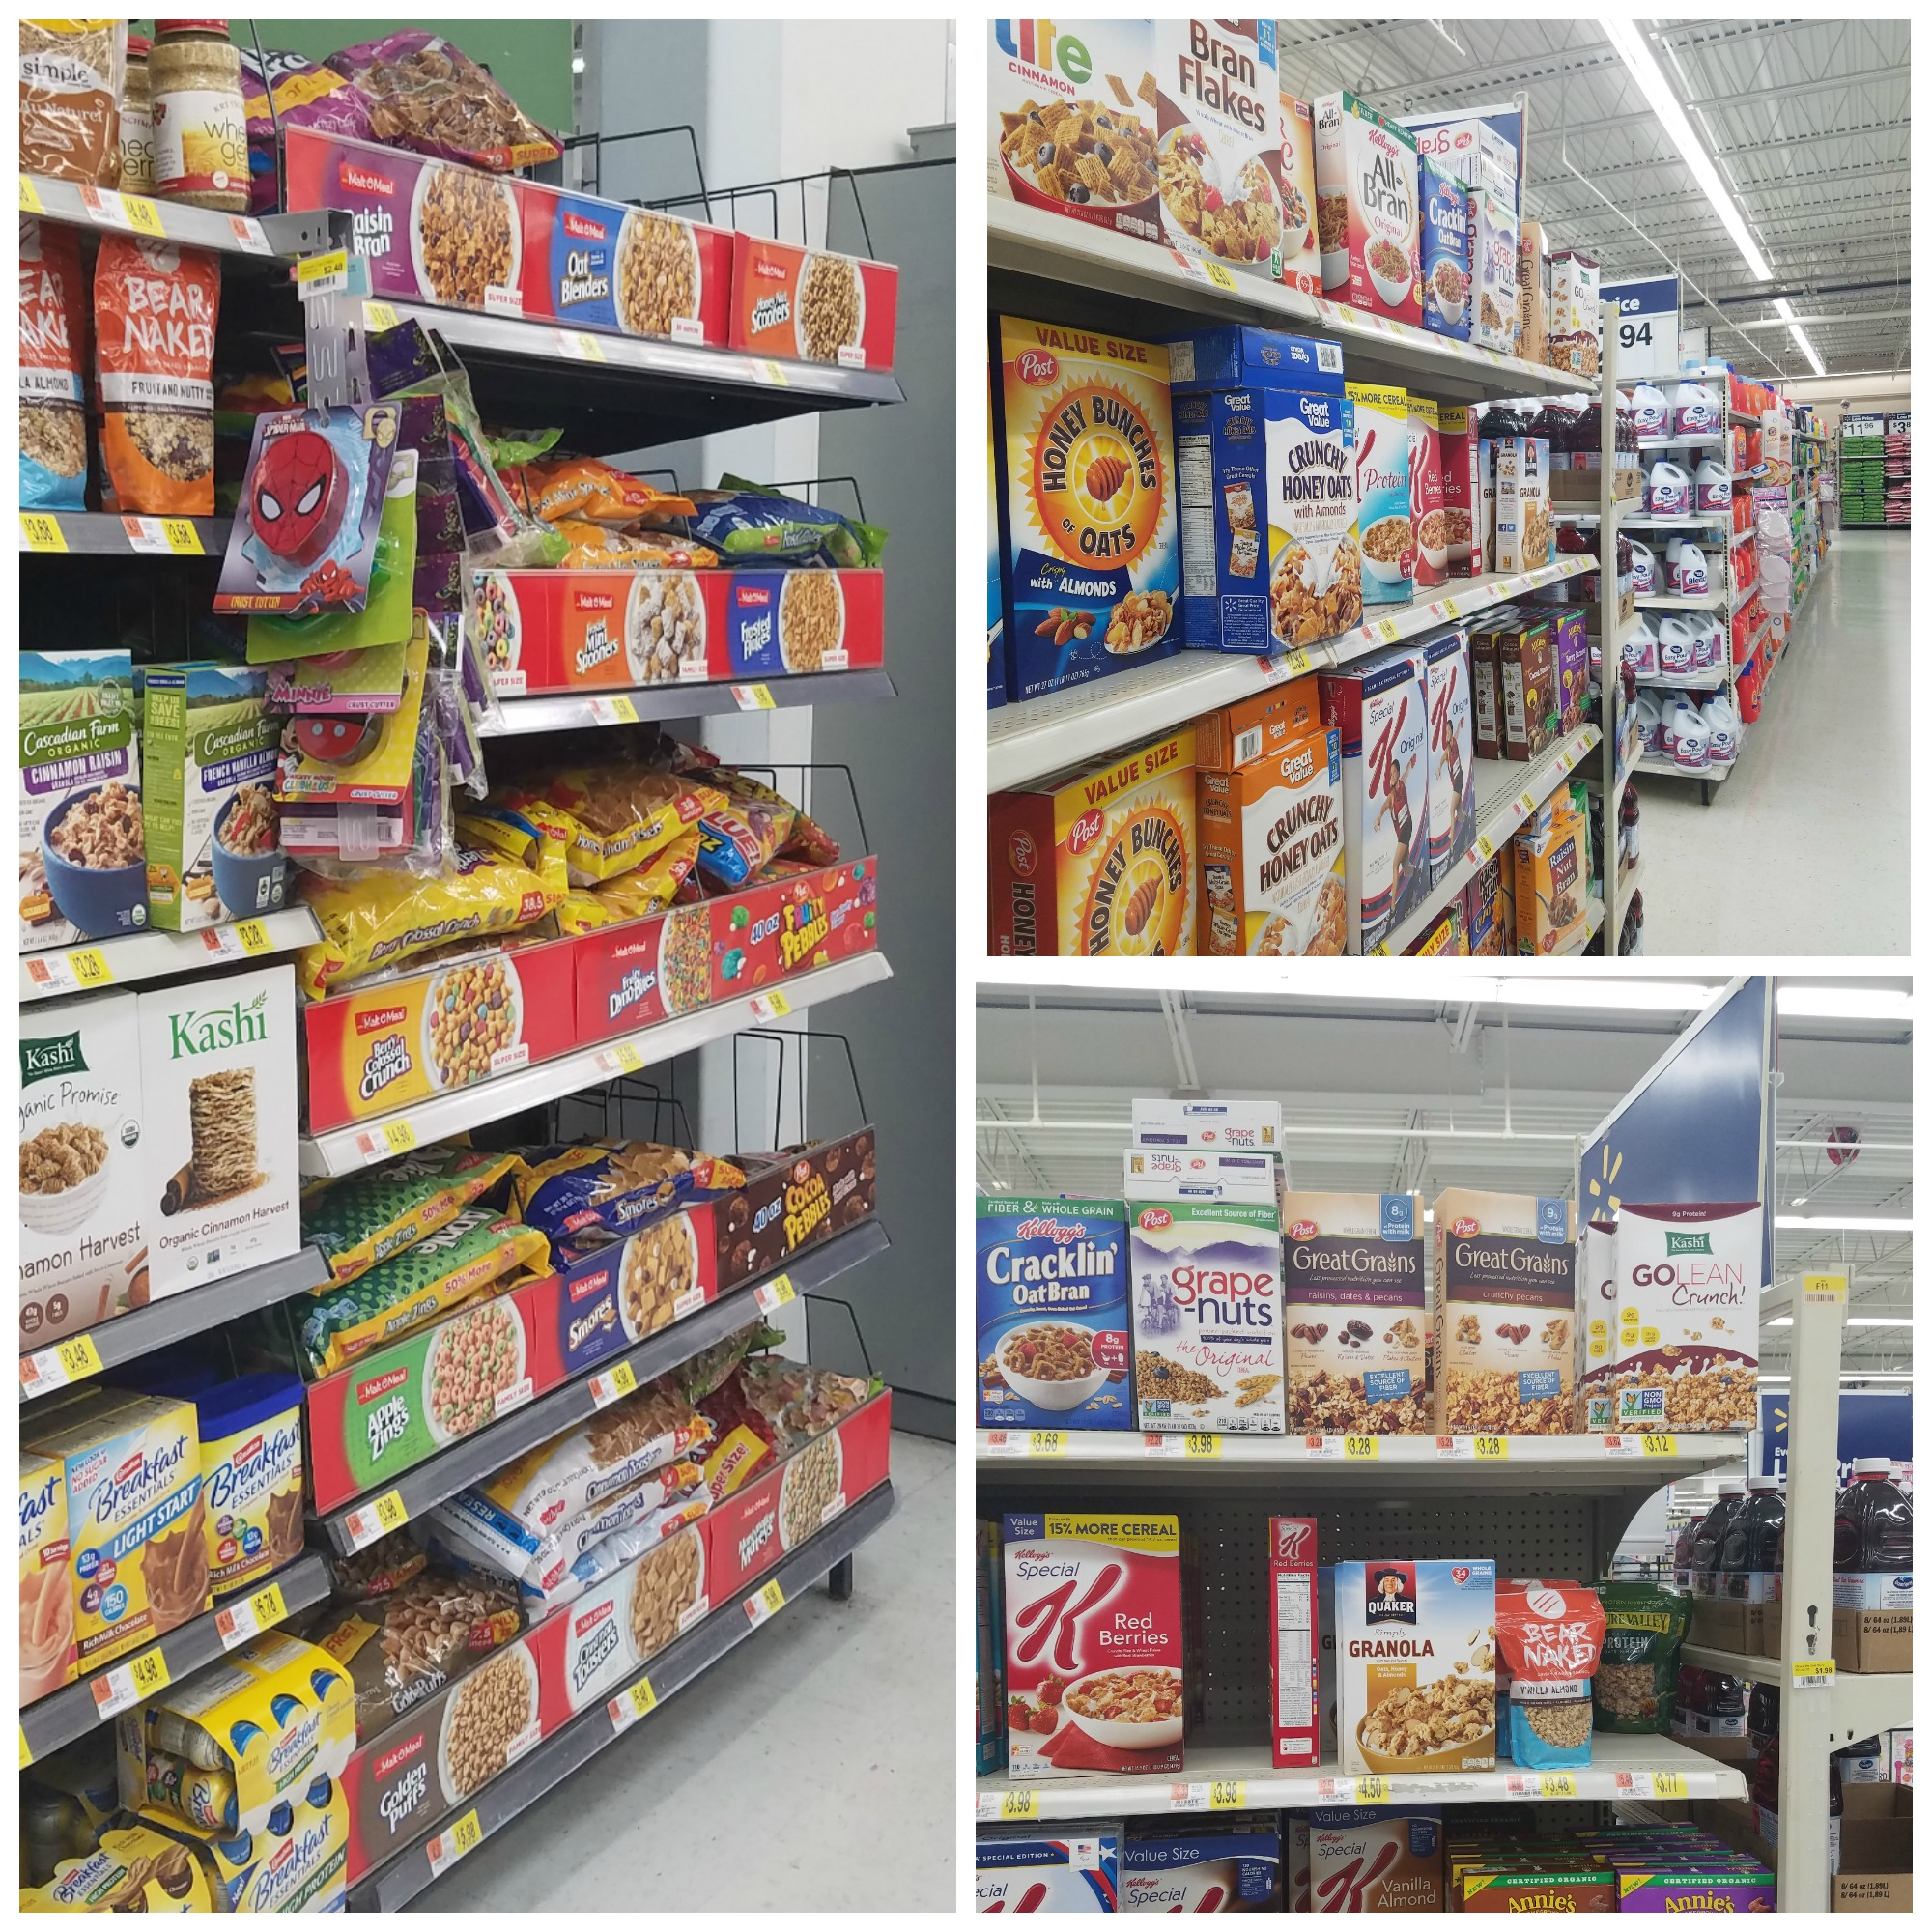 Post cereals at Walmart